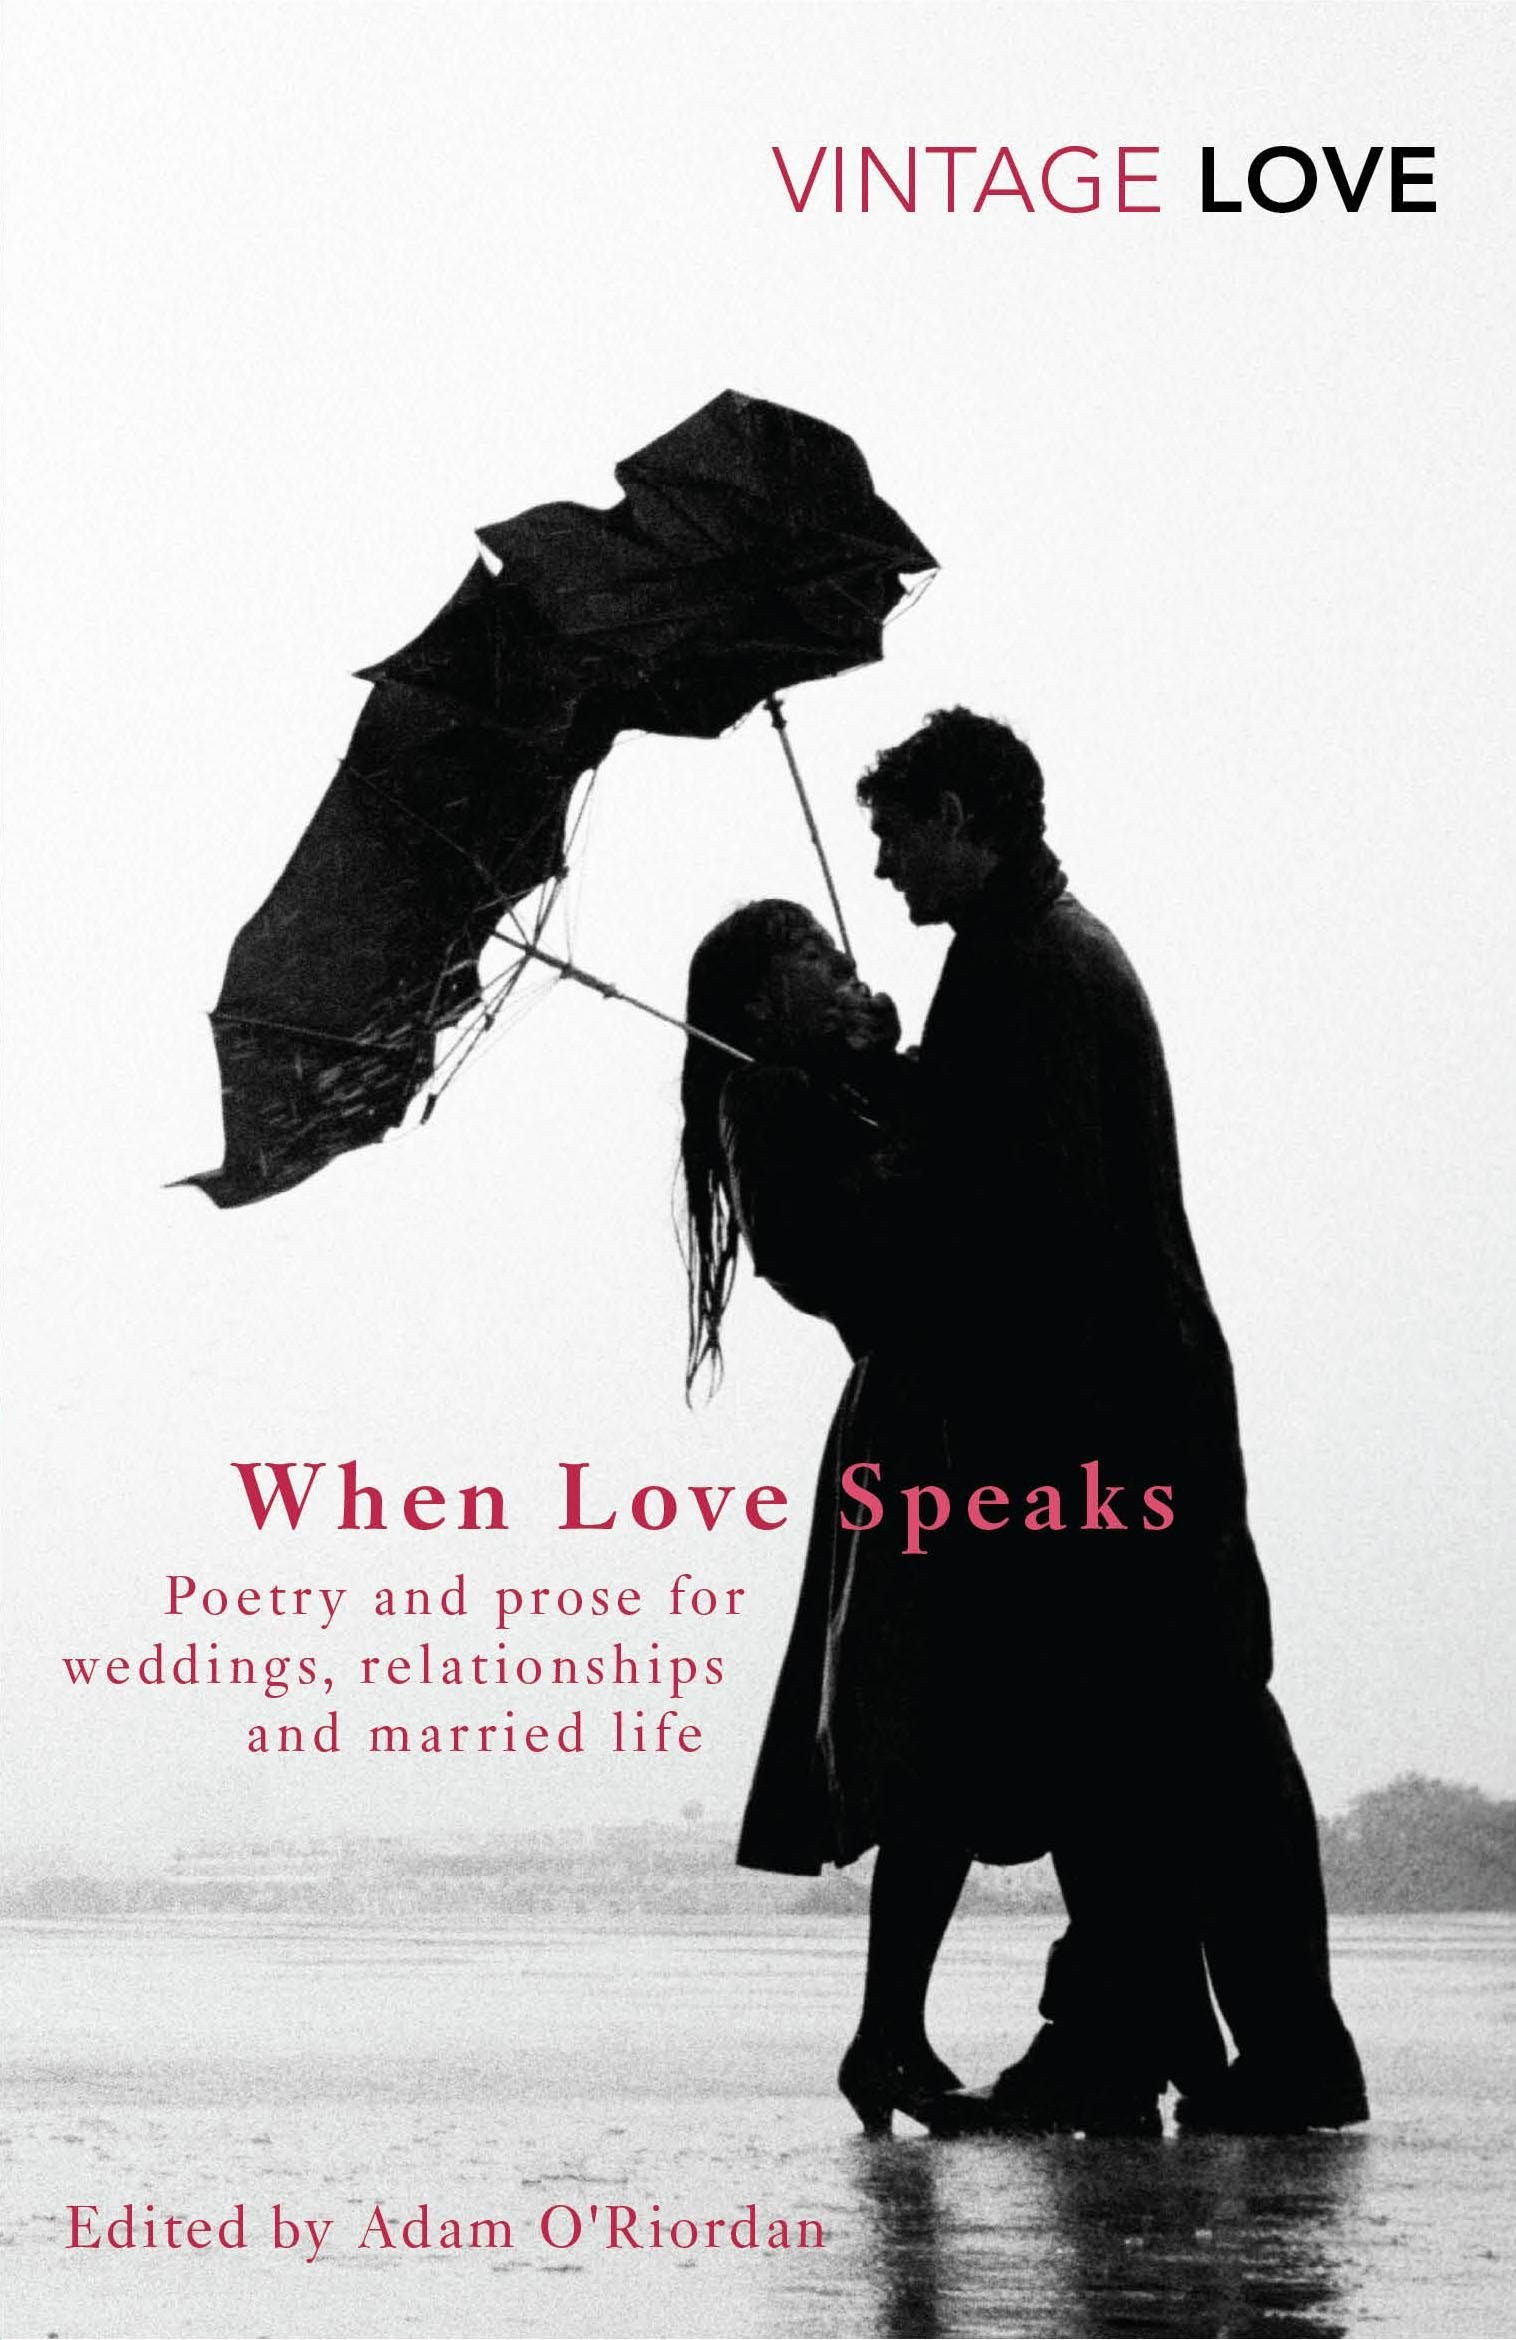 Download When Love Speaks: Poetry and Prose for Weddings, Relationships and Married Life PDF